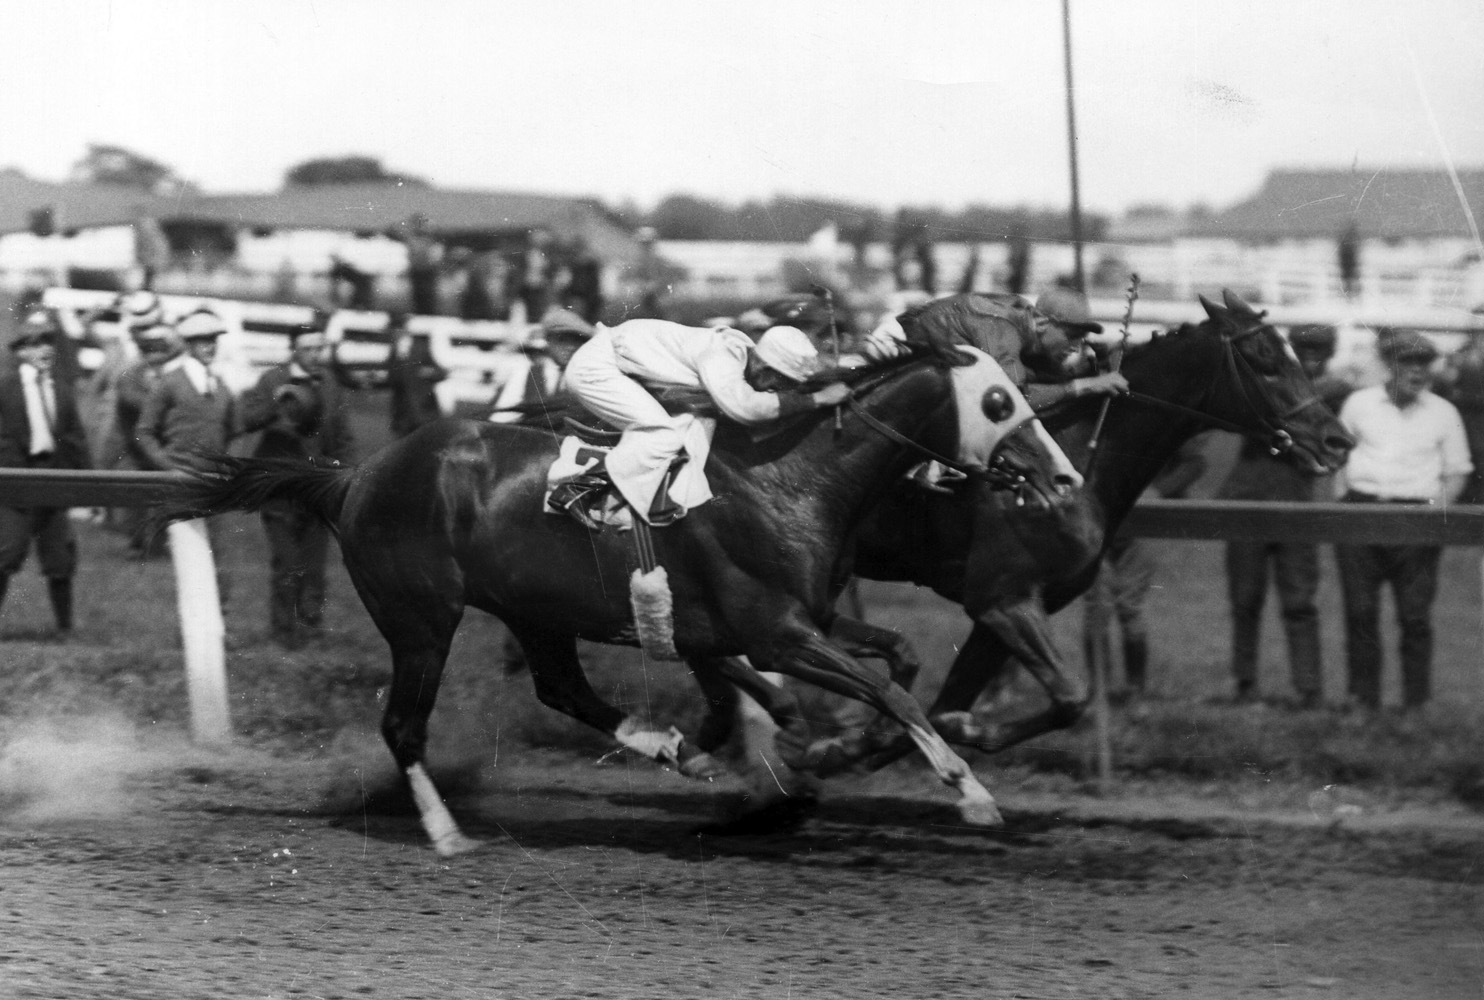 Exterminator (Albert Johnson up) defeating fellow Hall of Famer Grey Lag in the 1922 Brooklyn Handicap at Aqueduct (Museum Collection)